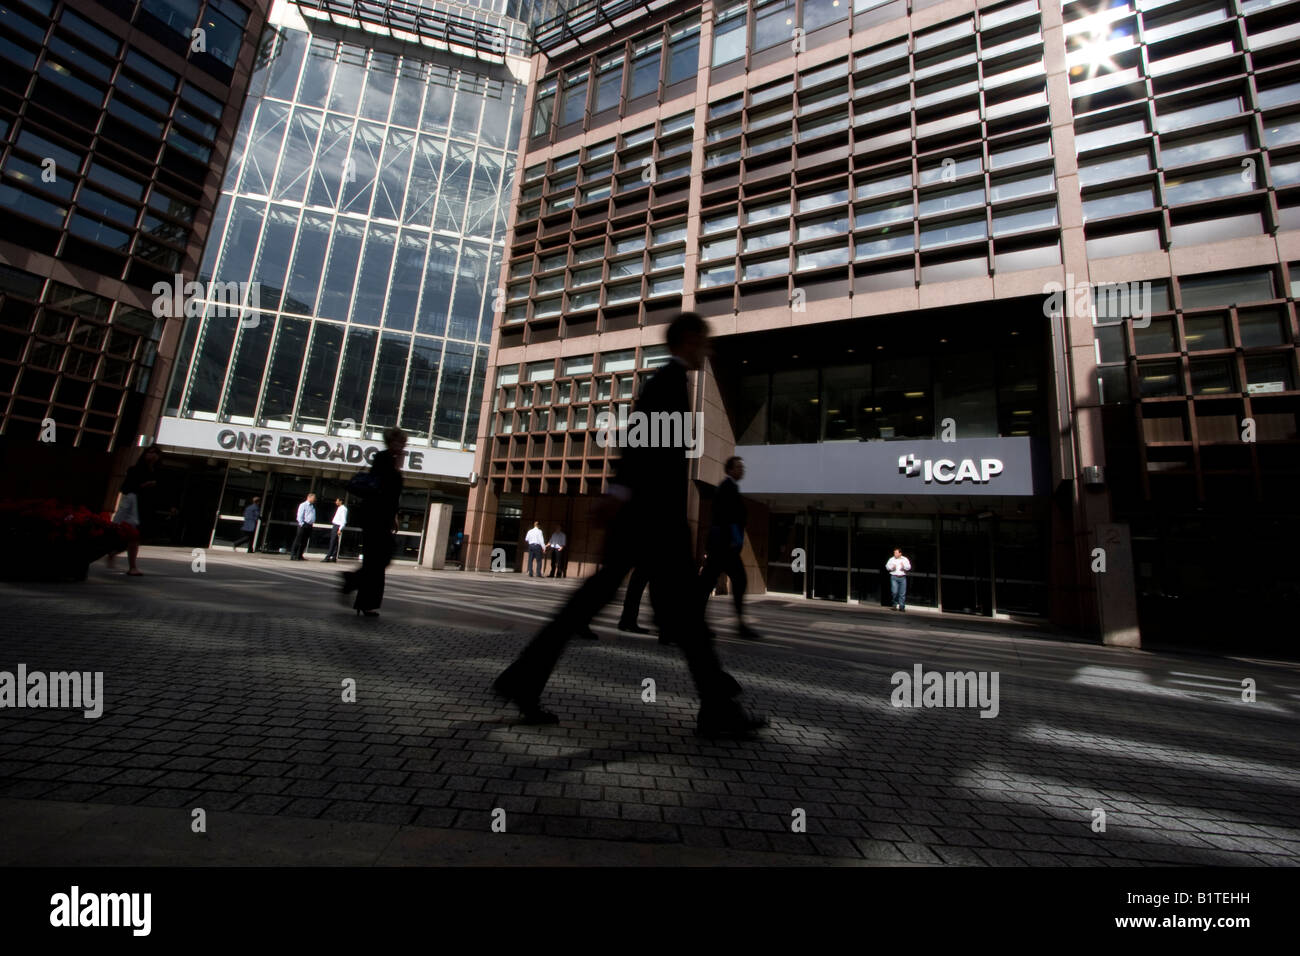 Icap broadgate London UK ICAP - Stock Image